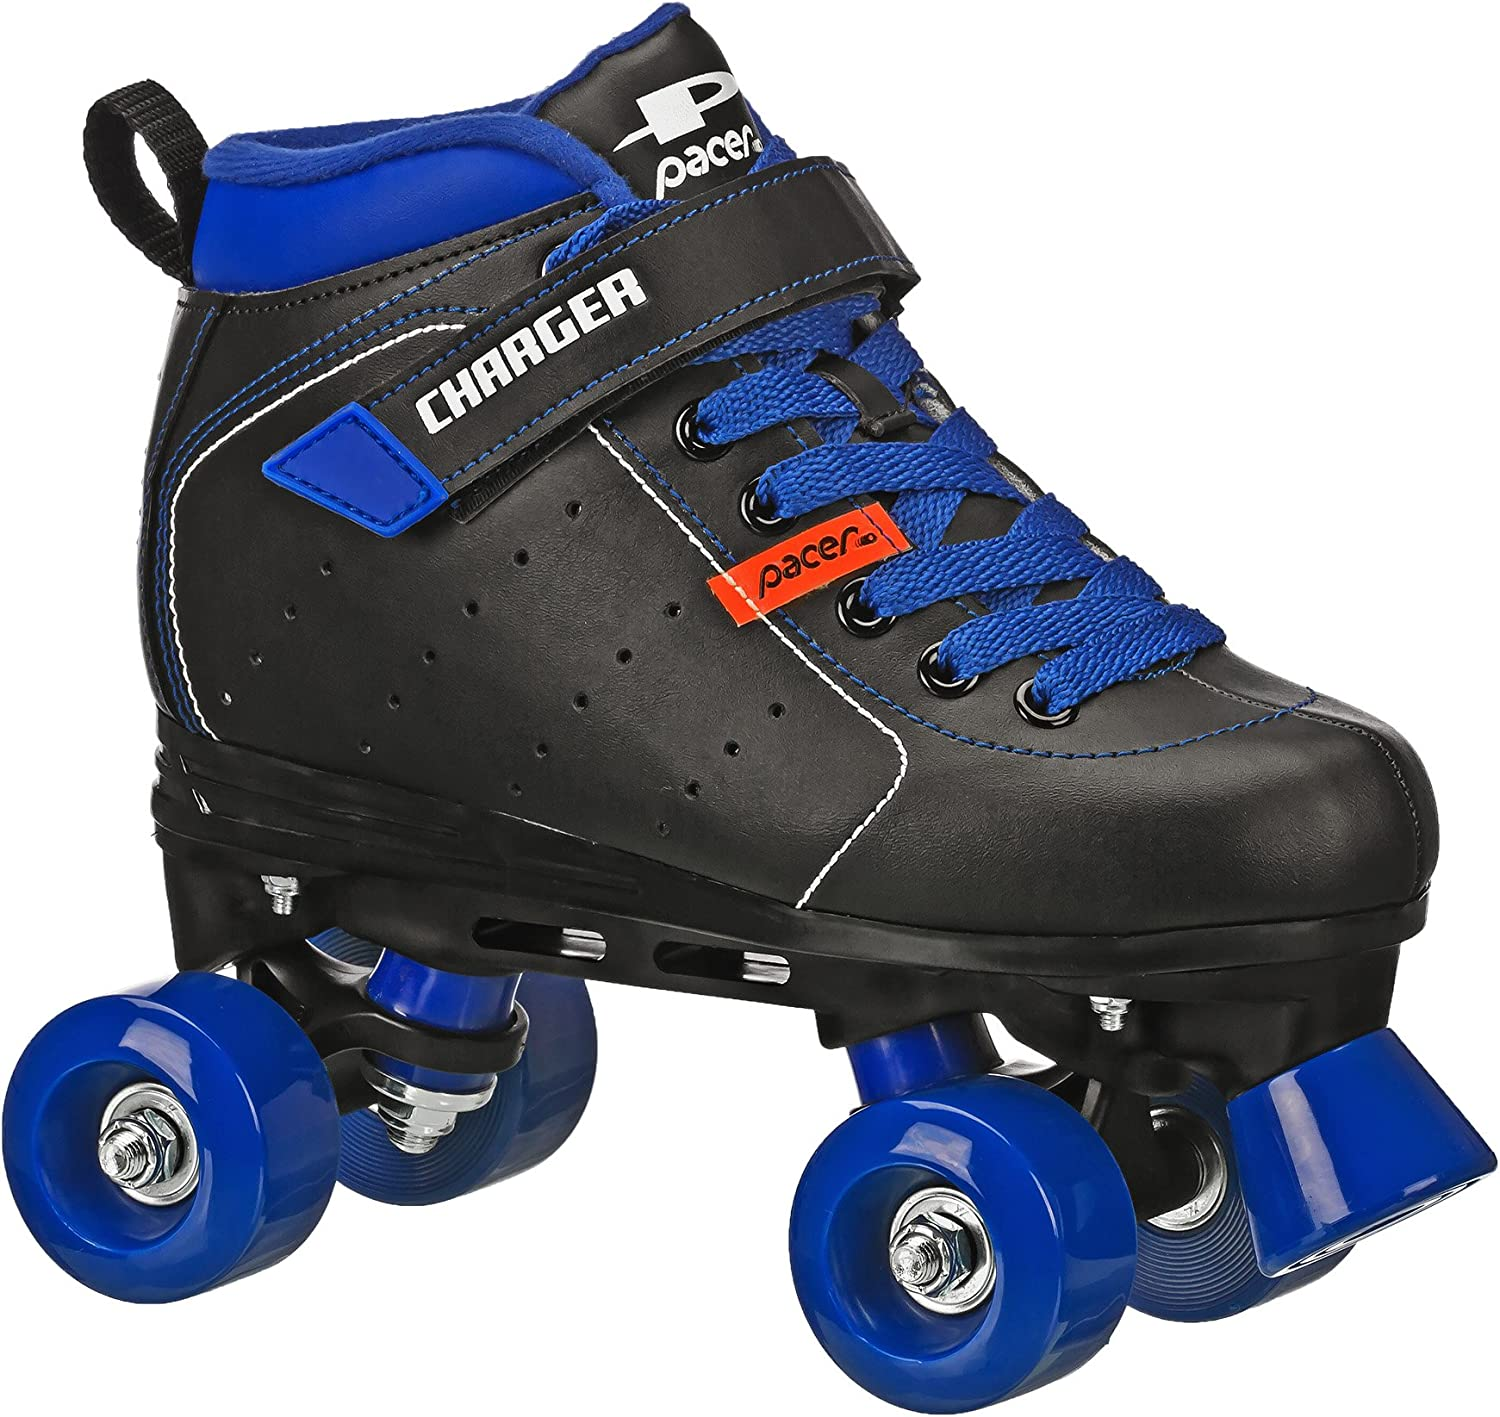 Pacer Al Popular overseas sold out. Charger Childrens Indoor Outdoor Quad Roller Skates